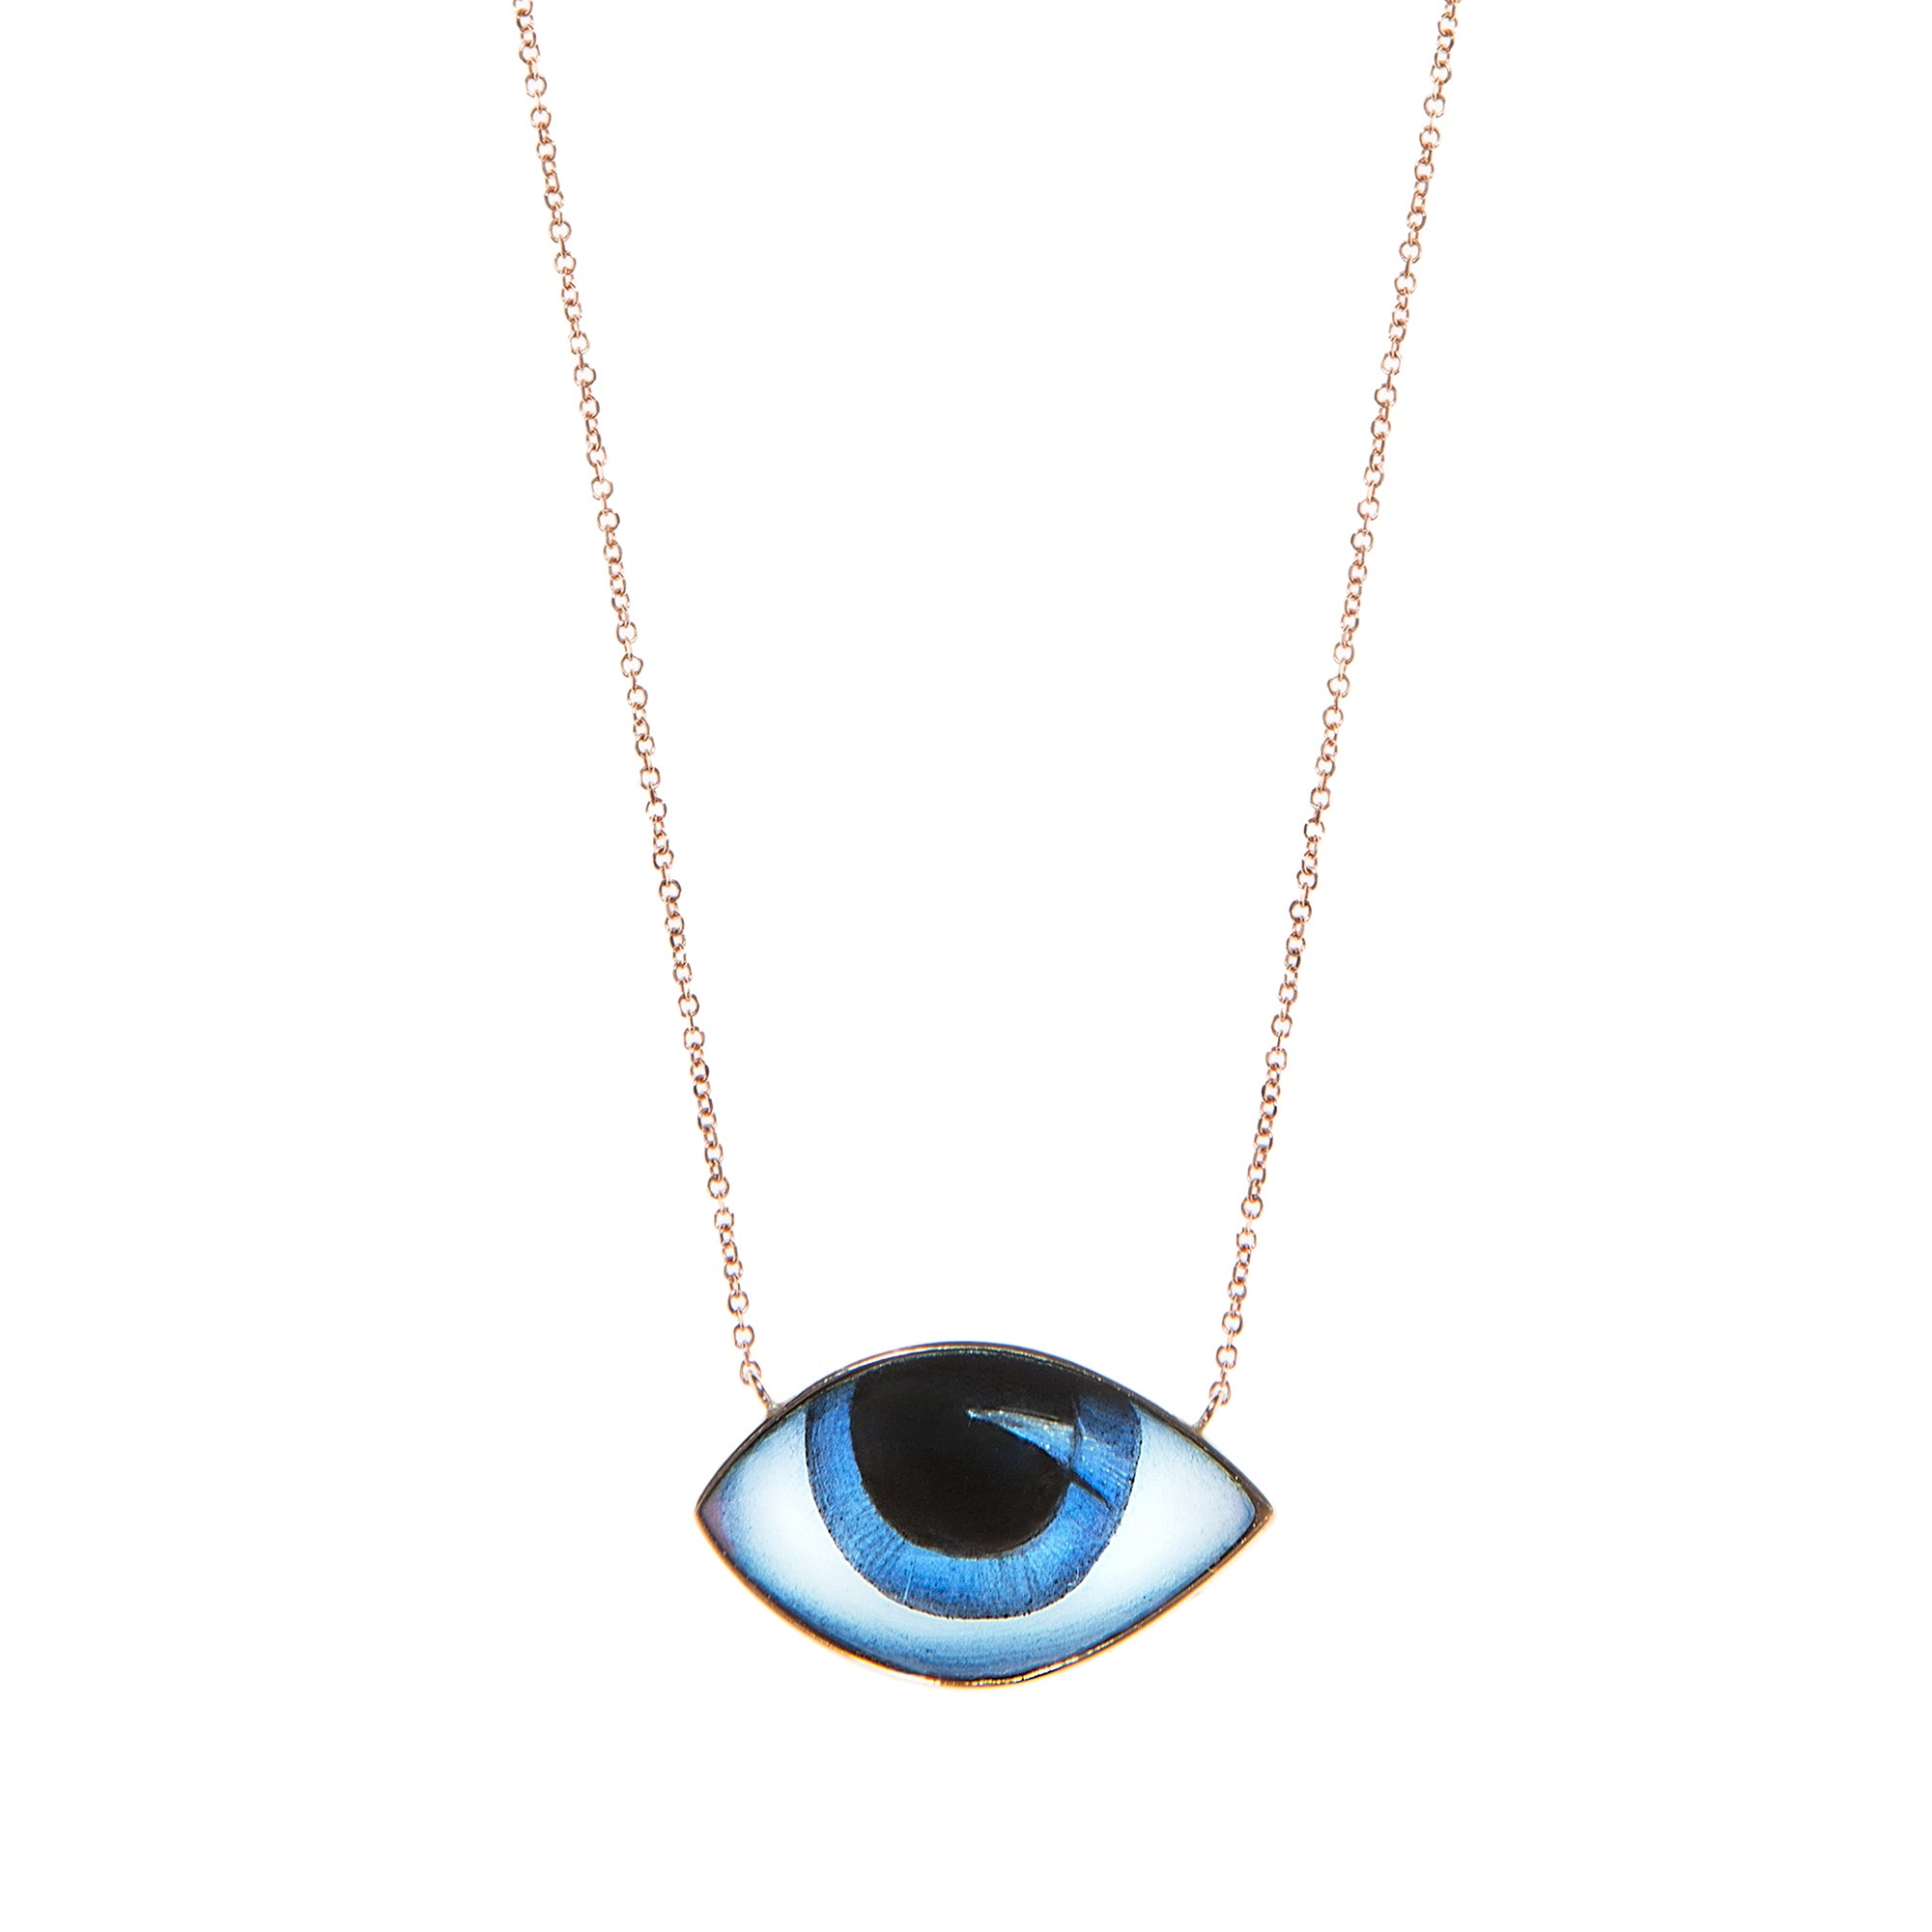 Big Blue Eye Necklace - Lito - Necklace | Broken English Jewelry